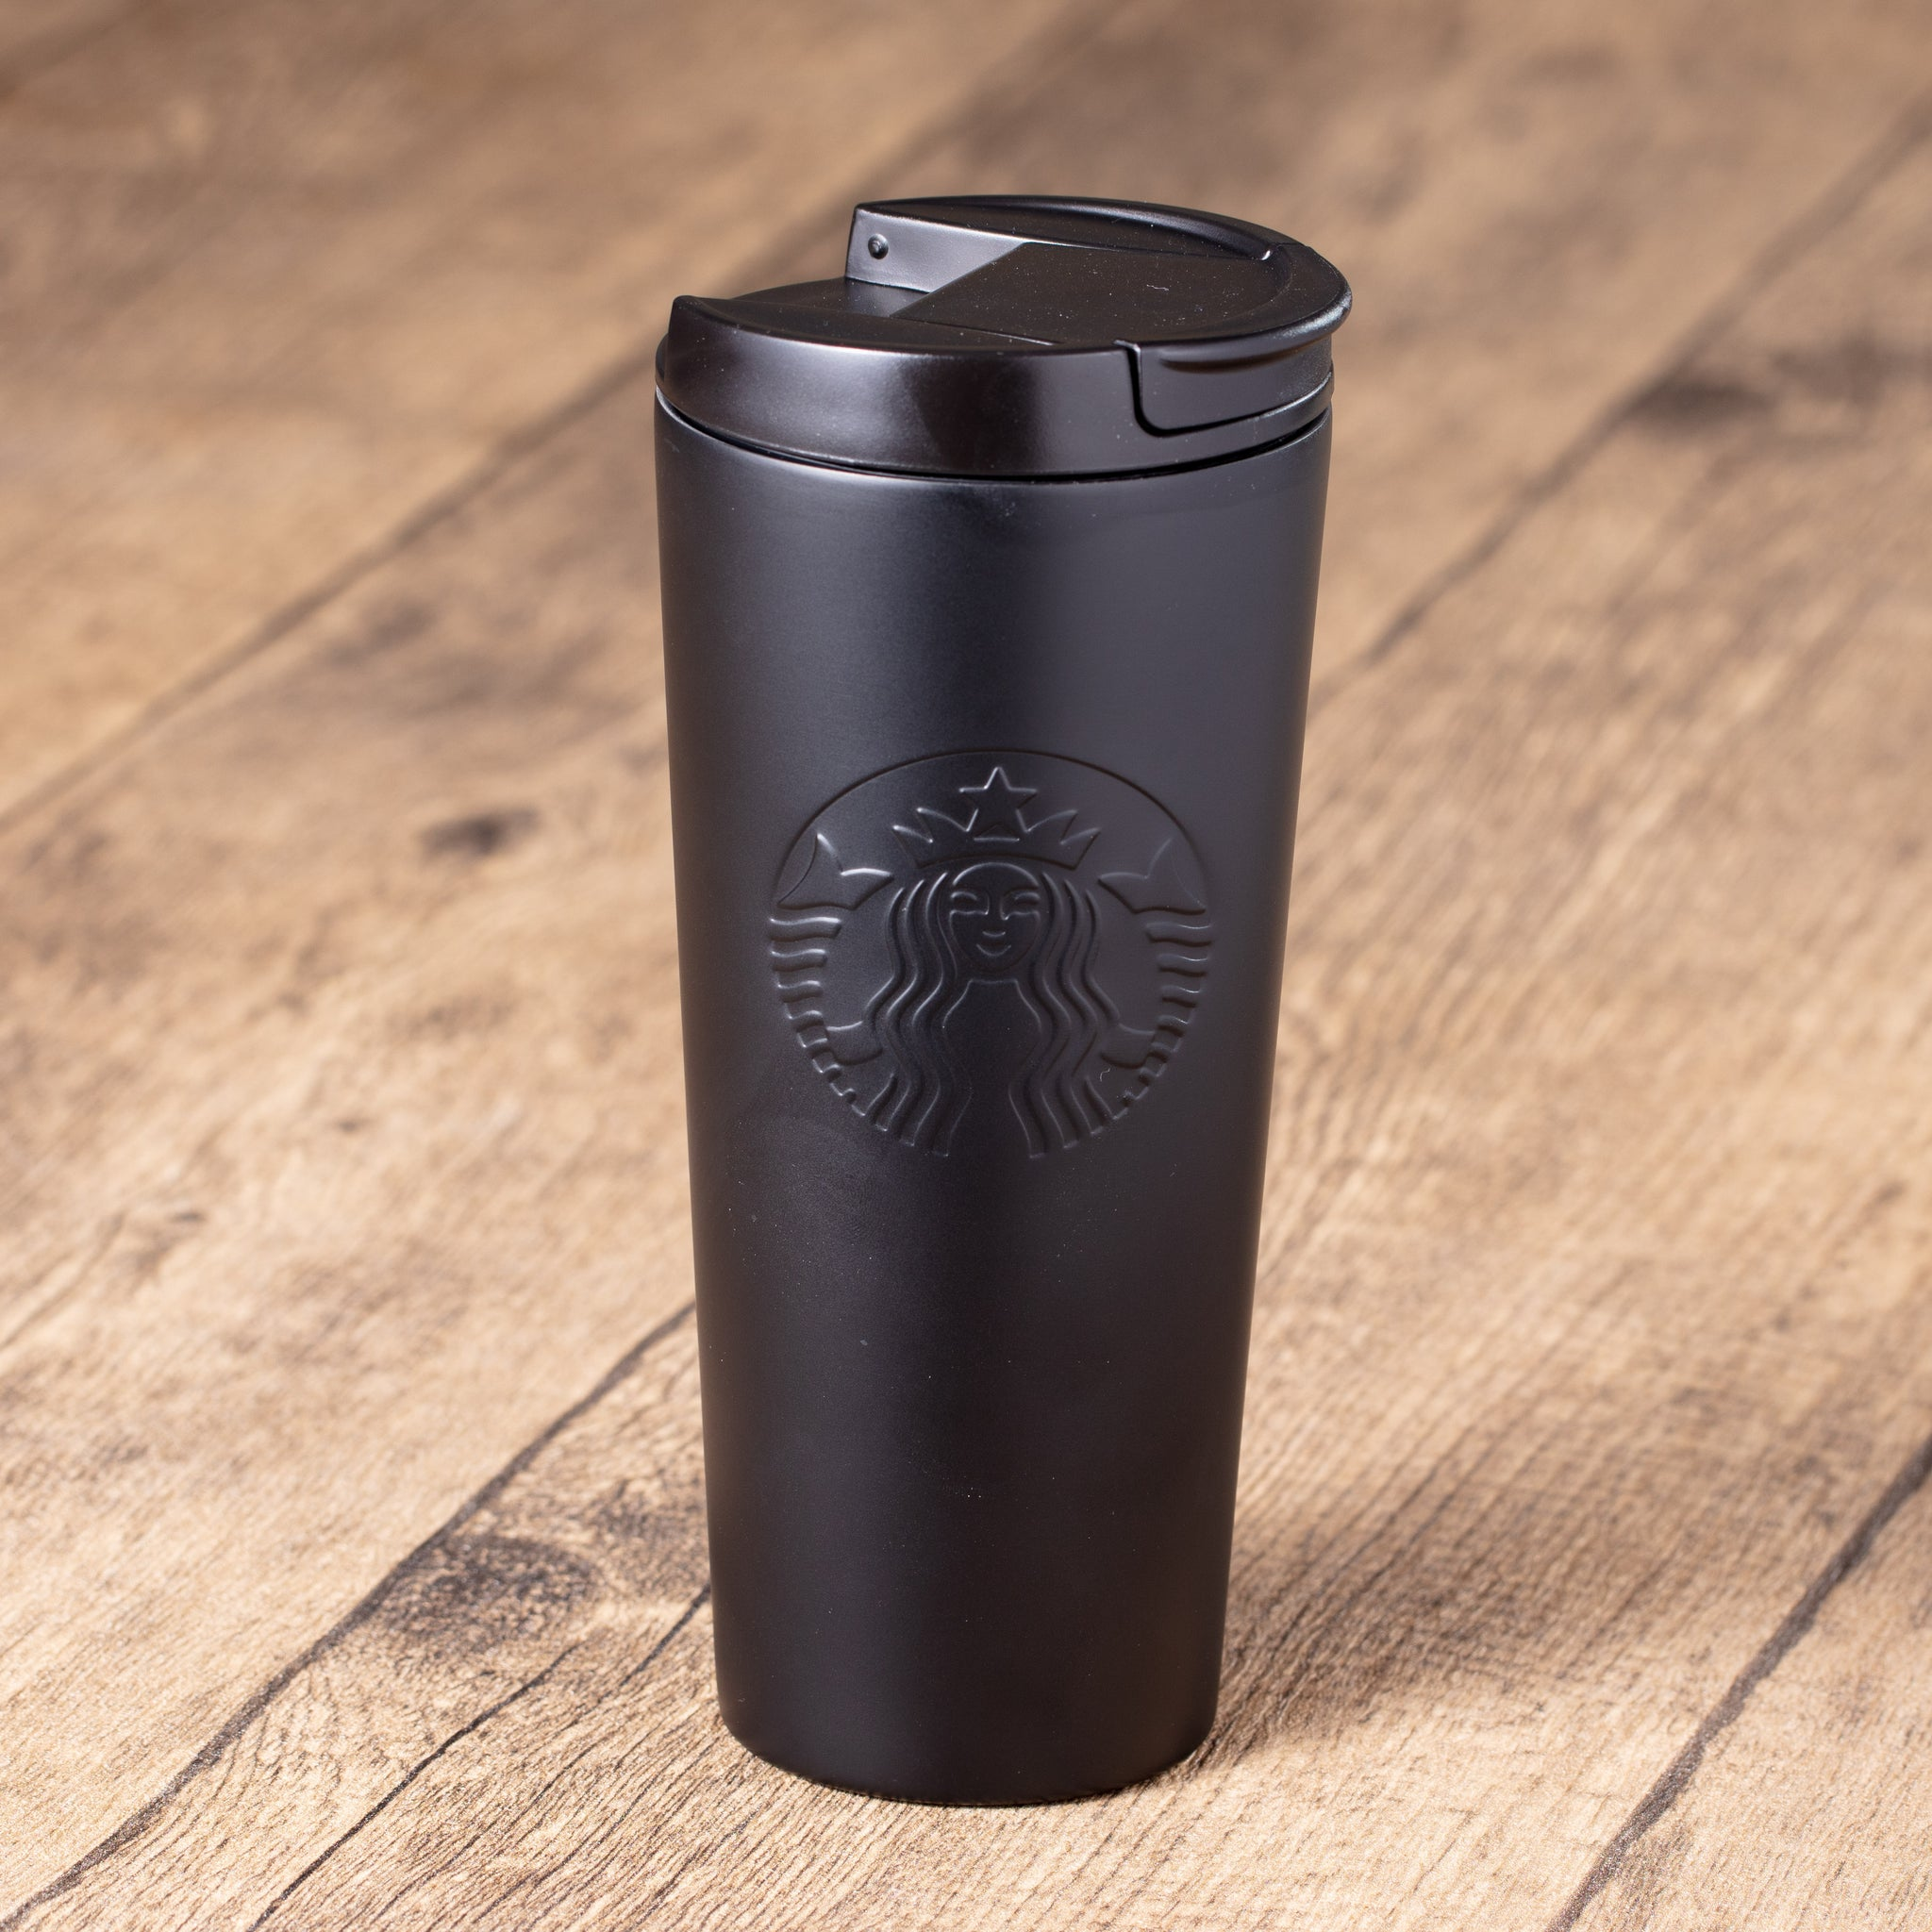 16oz Timeless Black Classic Stainless Steel Tumbler